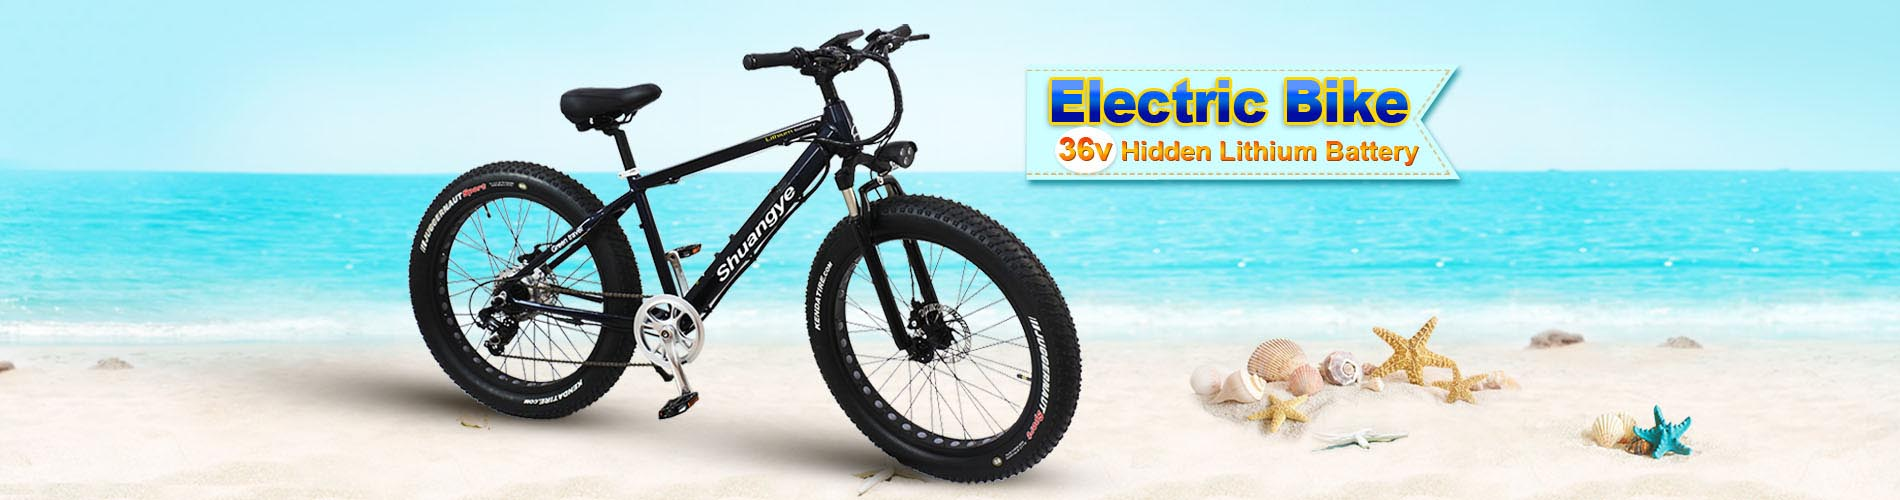 New ladies motorized bicycle electric